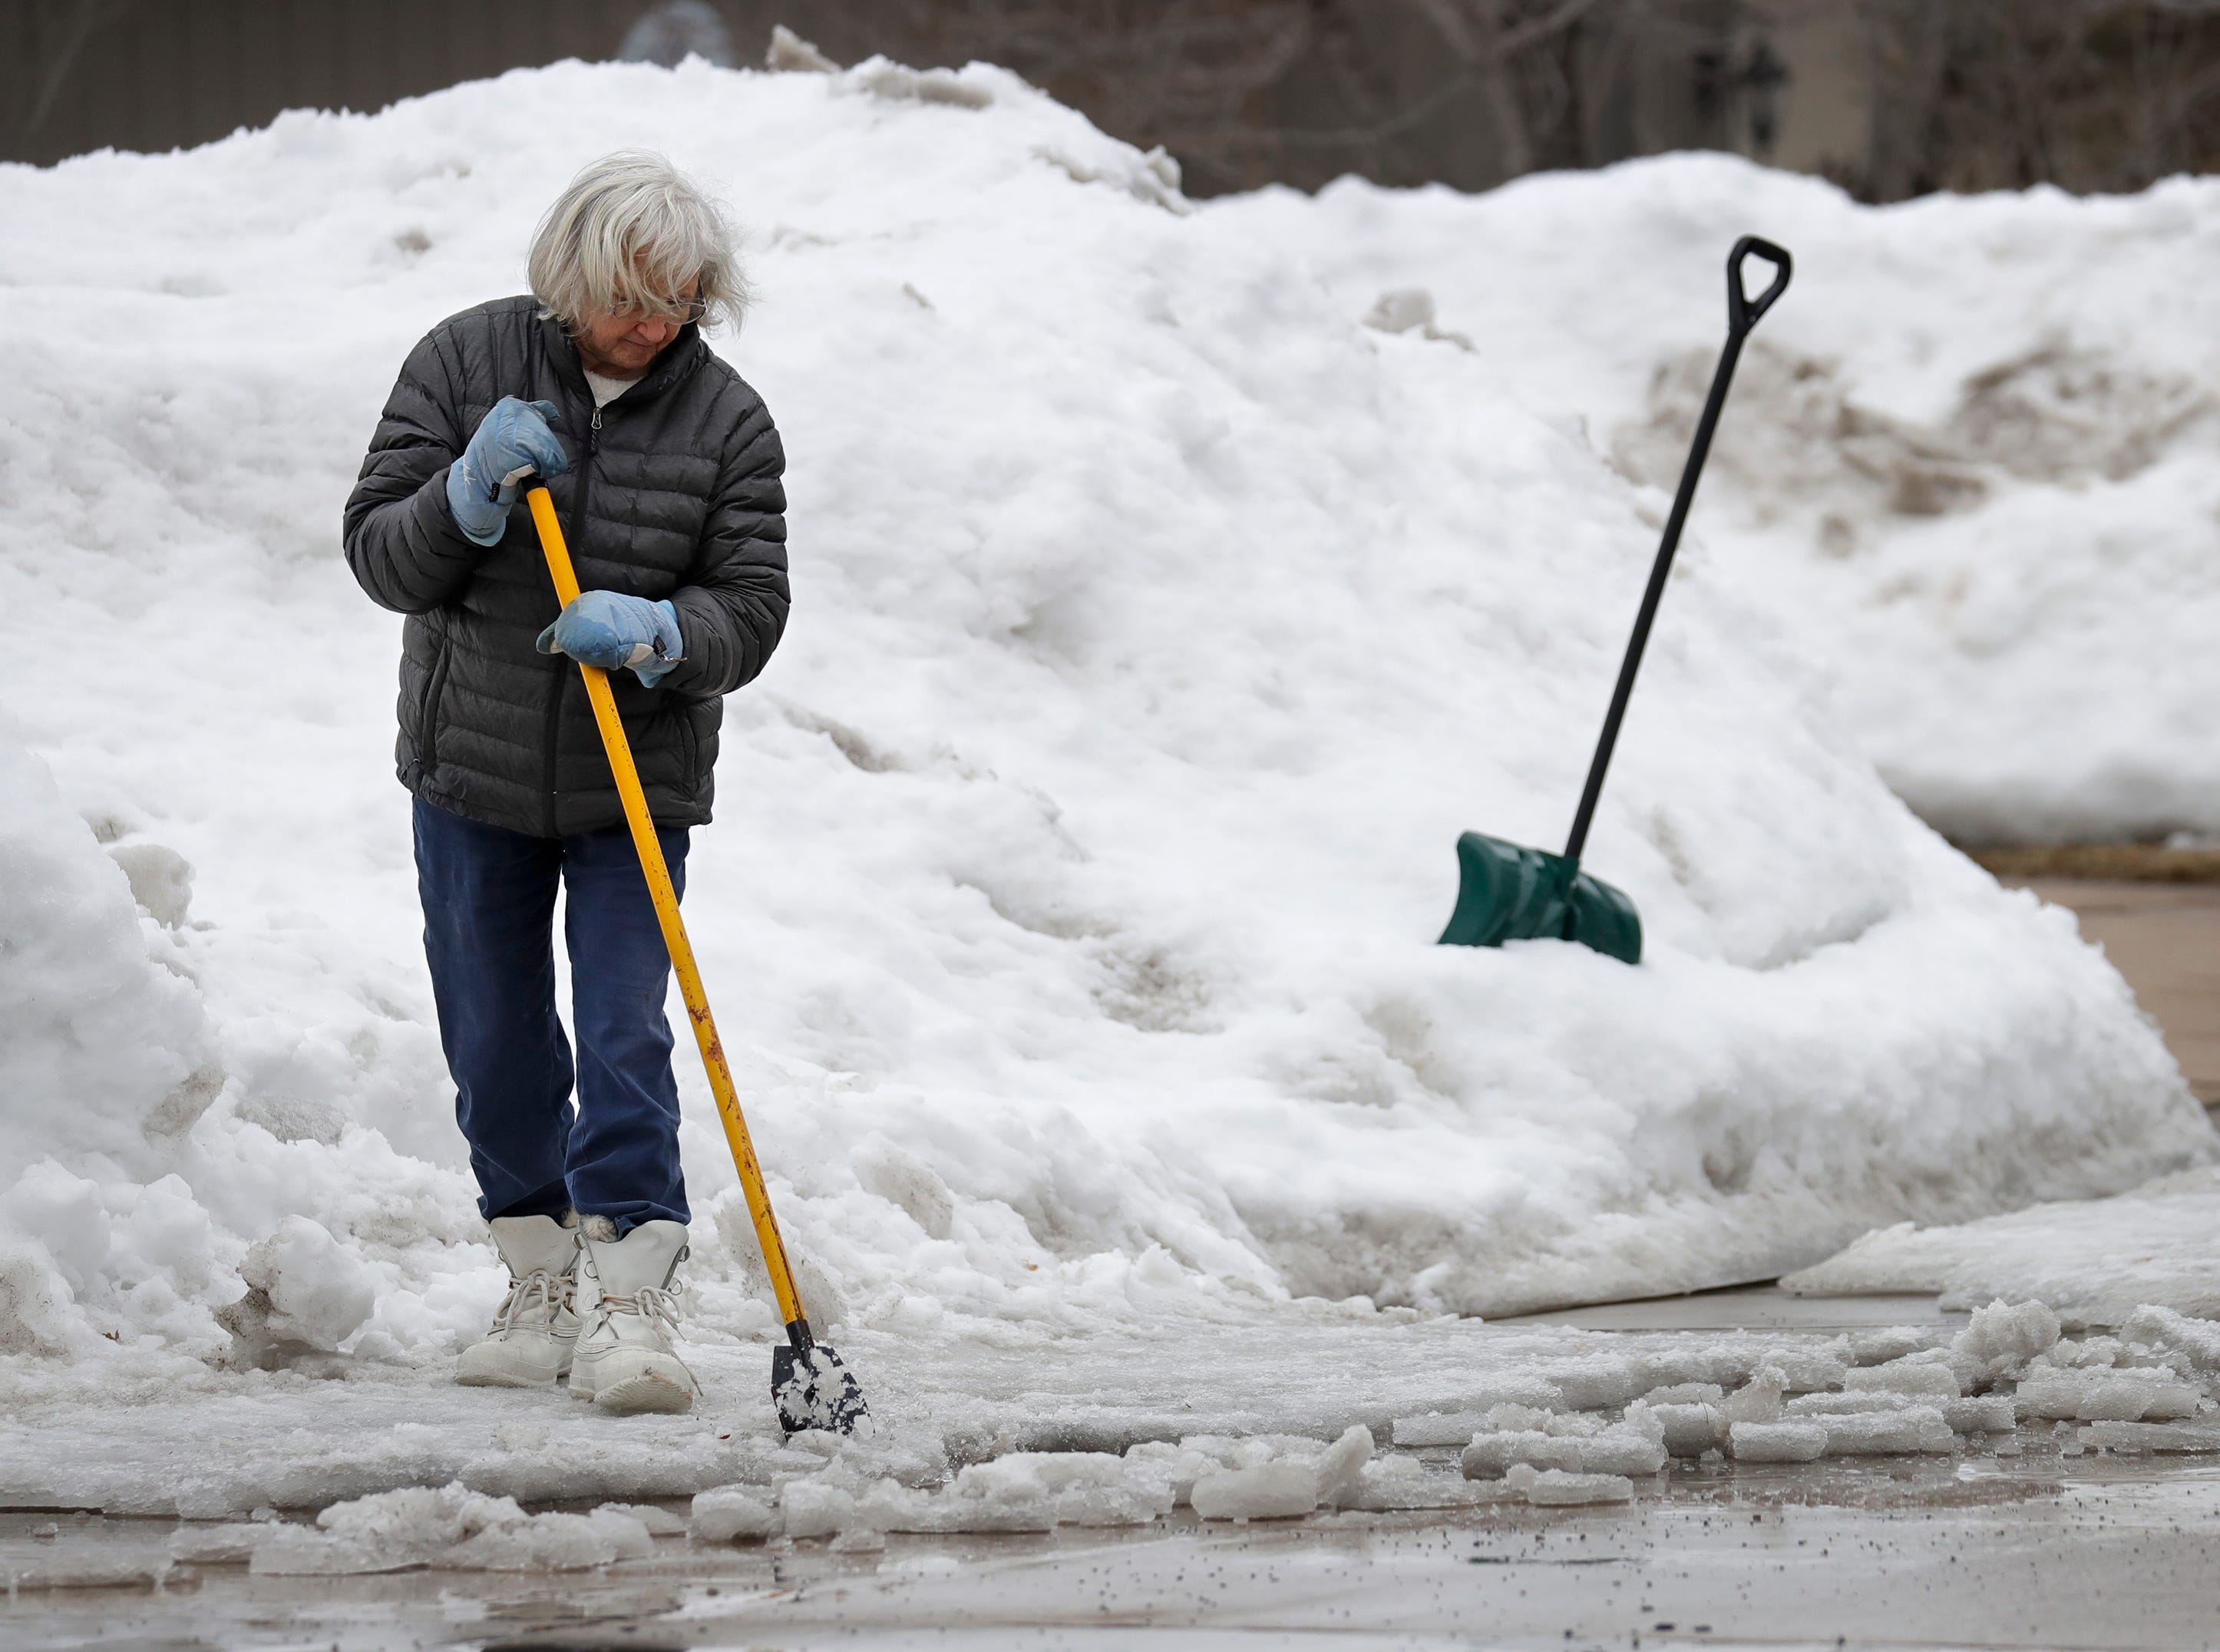 Kayleen Coburn is surrounded by large snowbanks as she breaks up thick ice to clear the entrance to her driveway along N. McDonald Street Monday, March 12, 2019, in Appleton, Wis. Dan Powers/USA TODAY NETWORK-Wisconsin